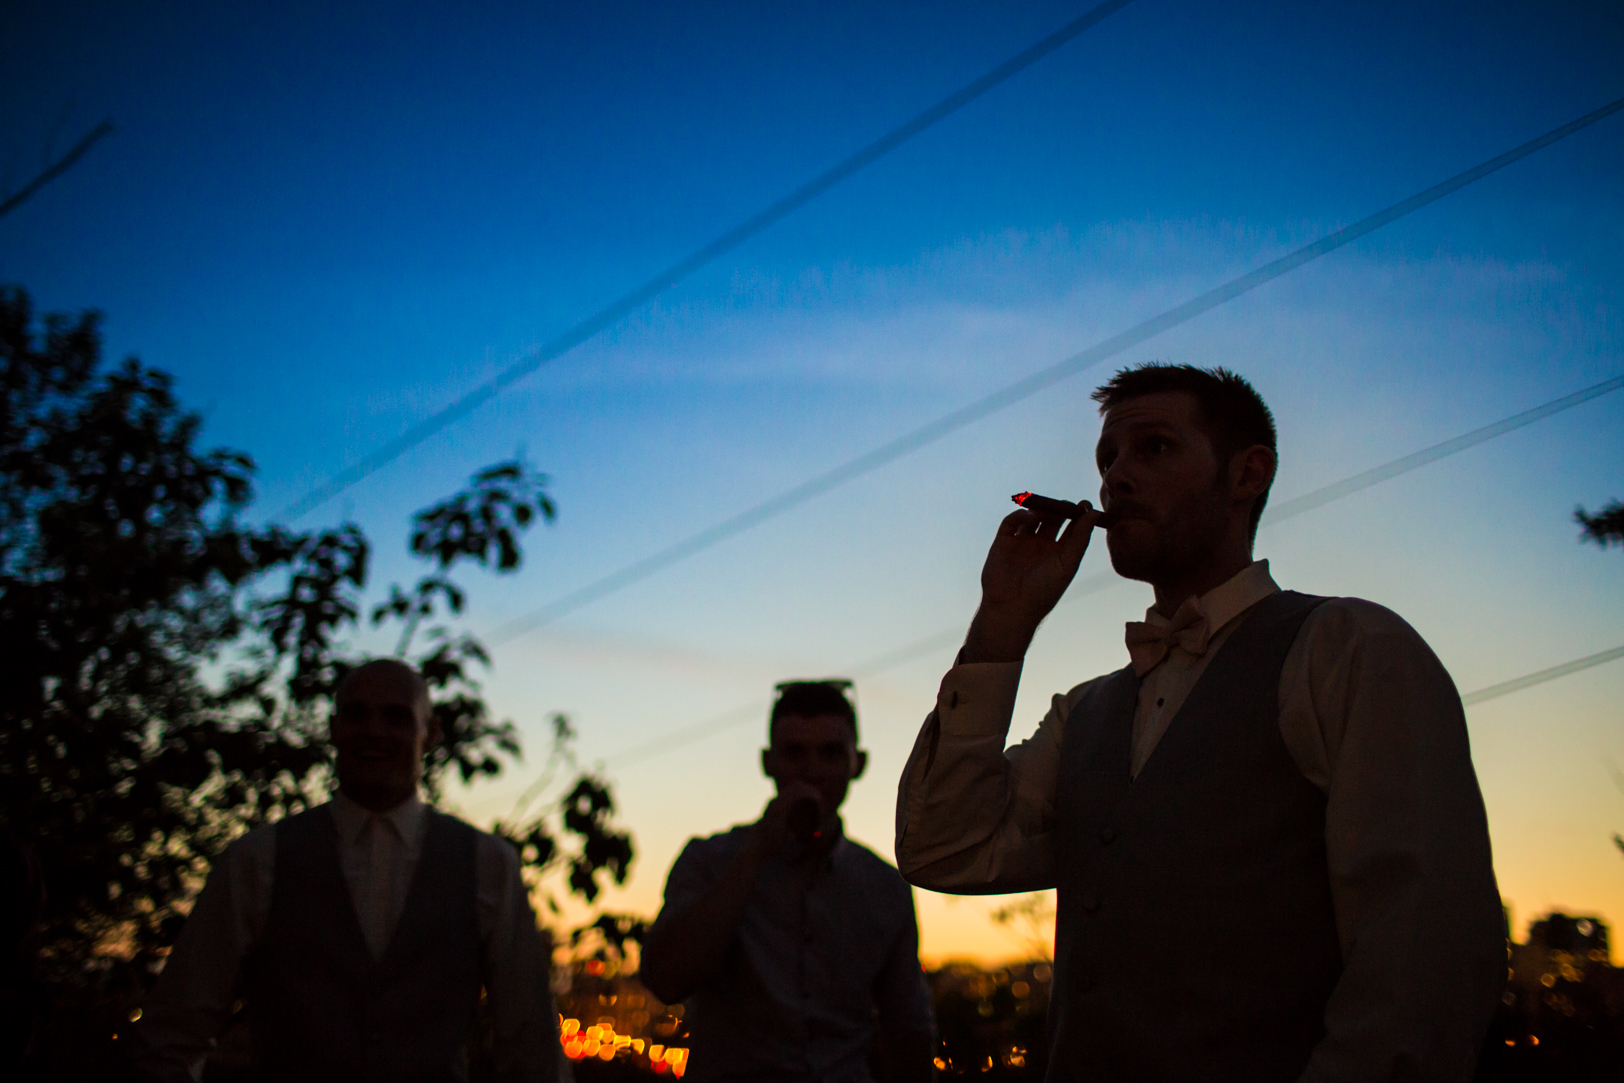 Sunset and Cigars